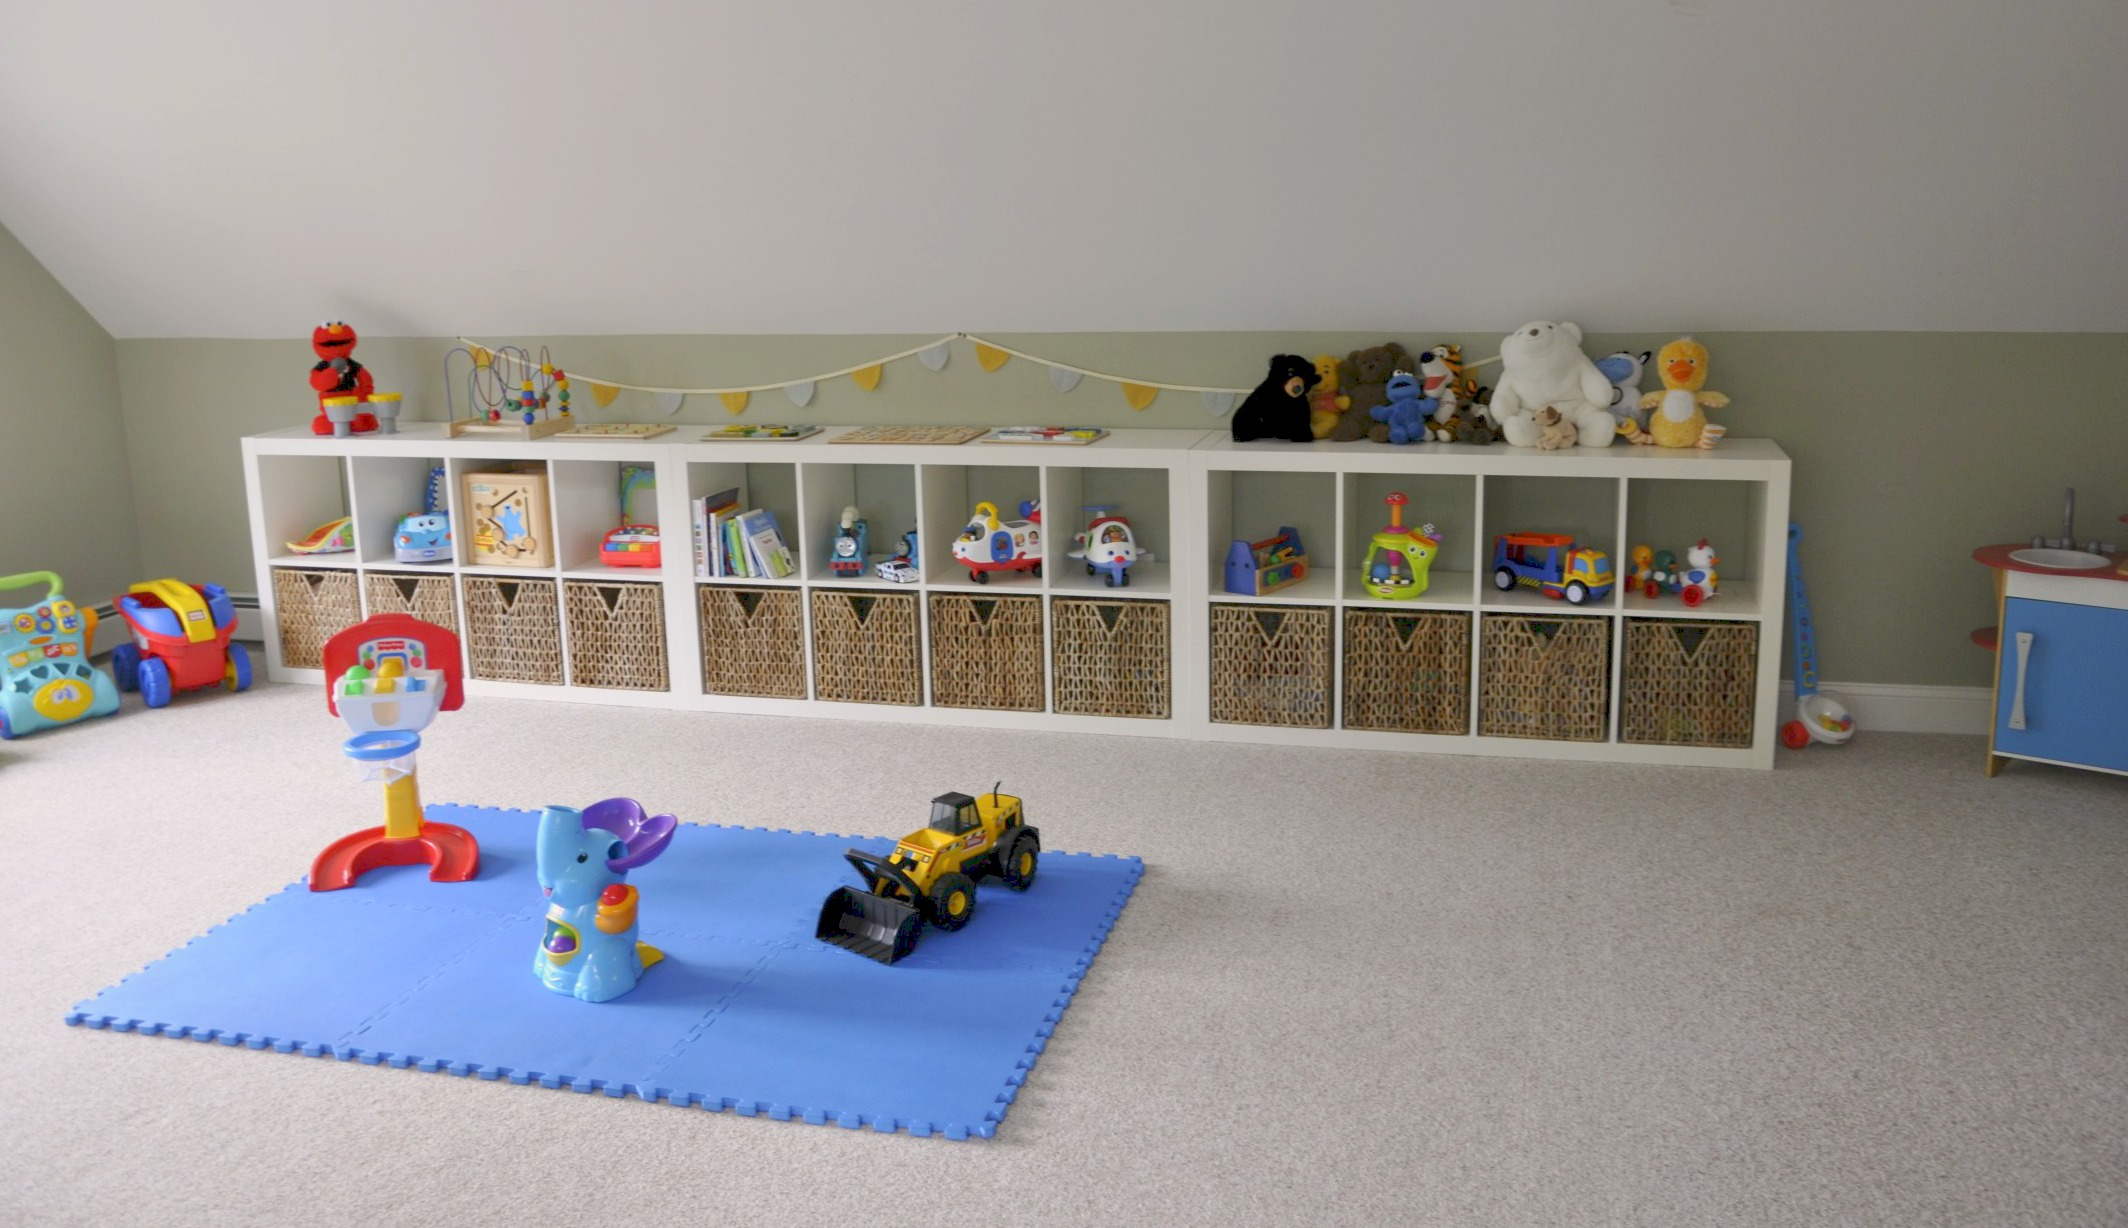 Ikea expedit playroom storage 2 sisters 2 cities - Kids room ideas ikea ...